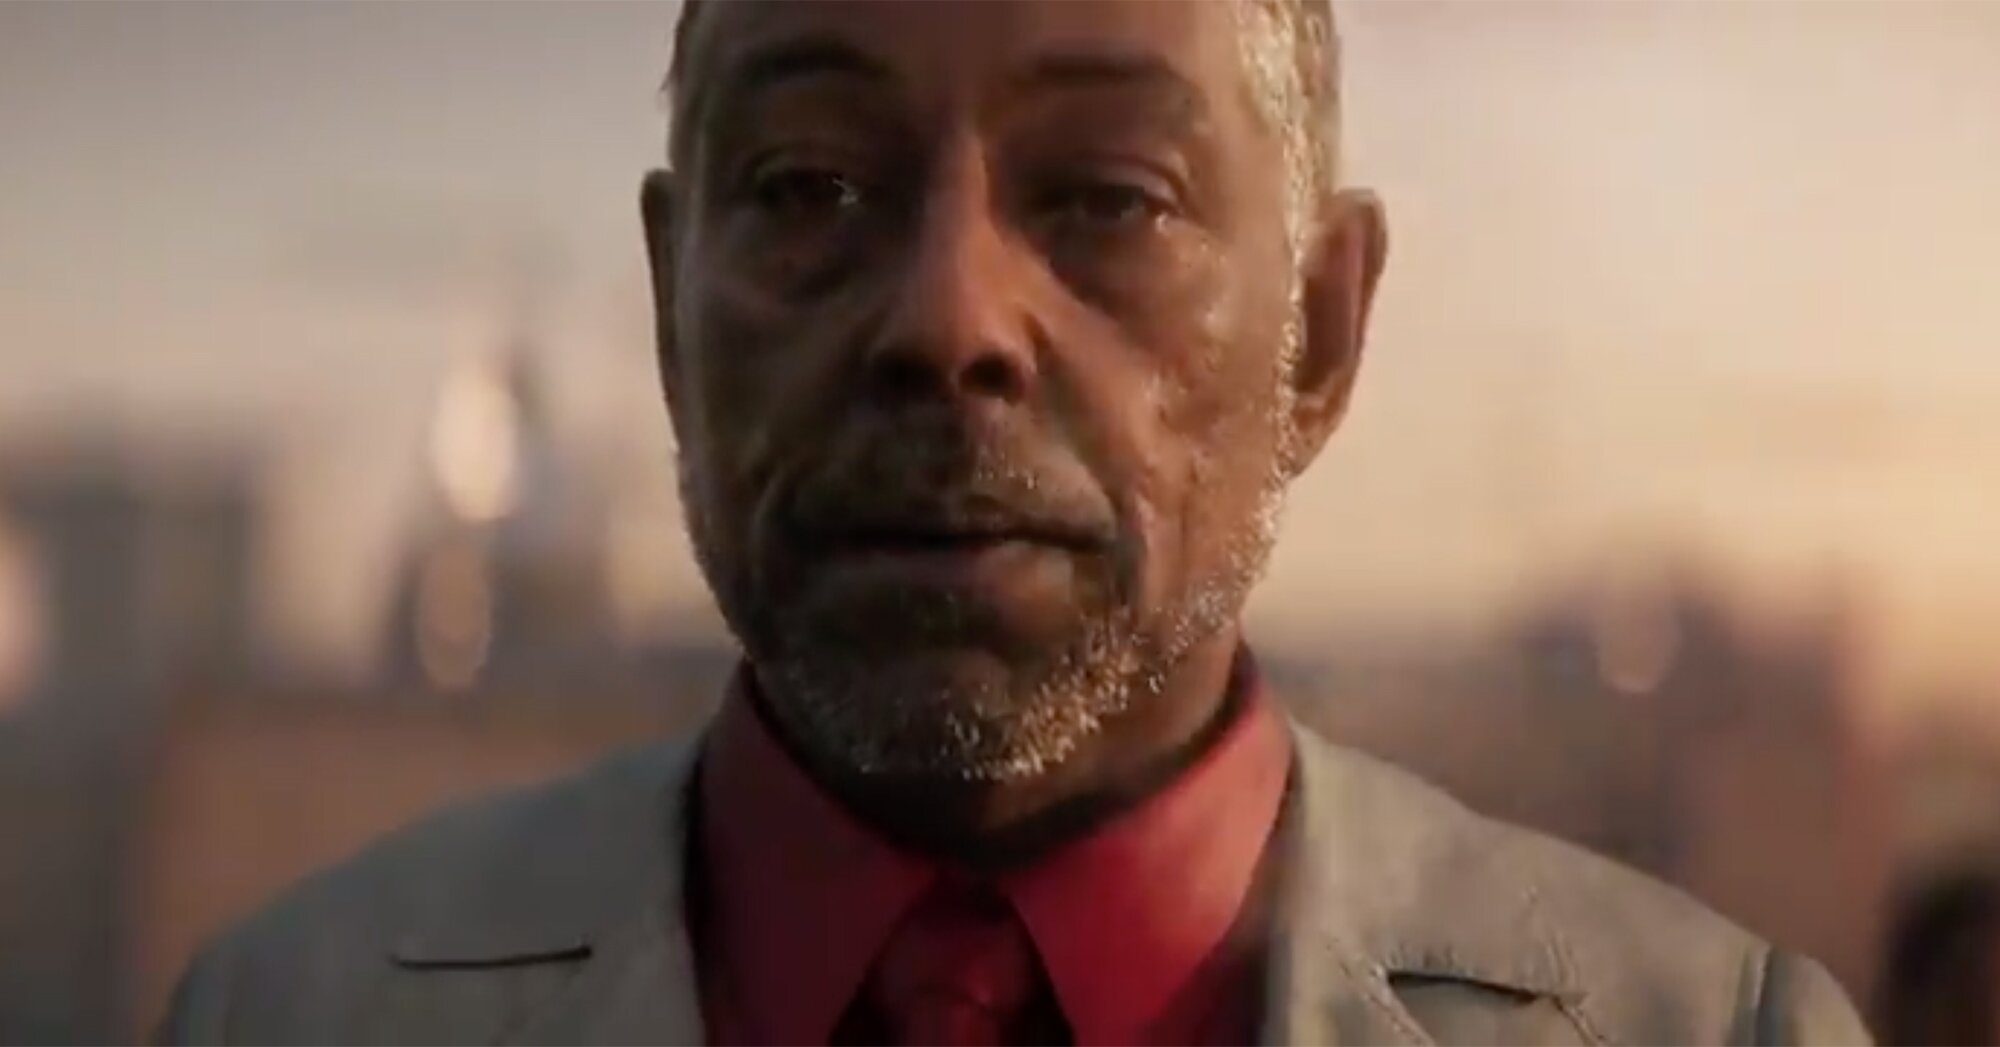 Breaking Bad Star Giancarlo Esposito Confirmed For Far Cry 6 Ew Com